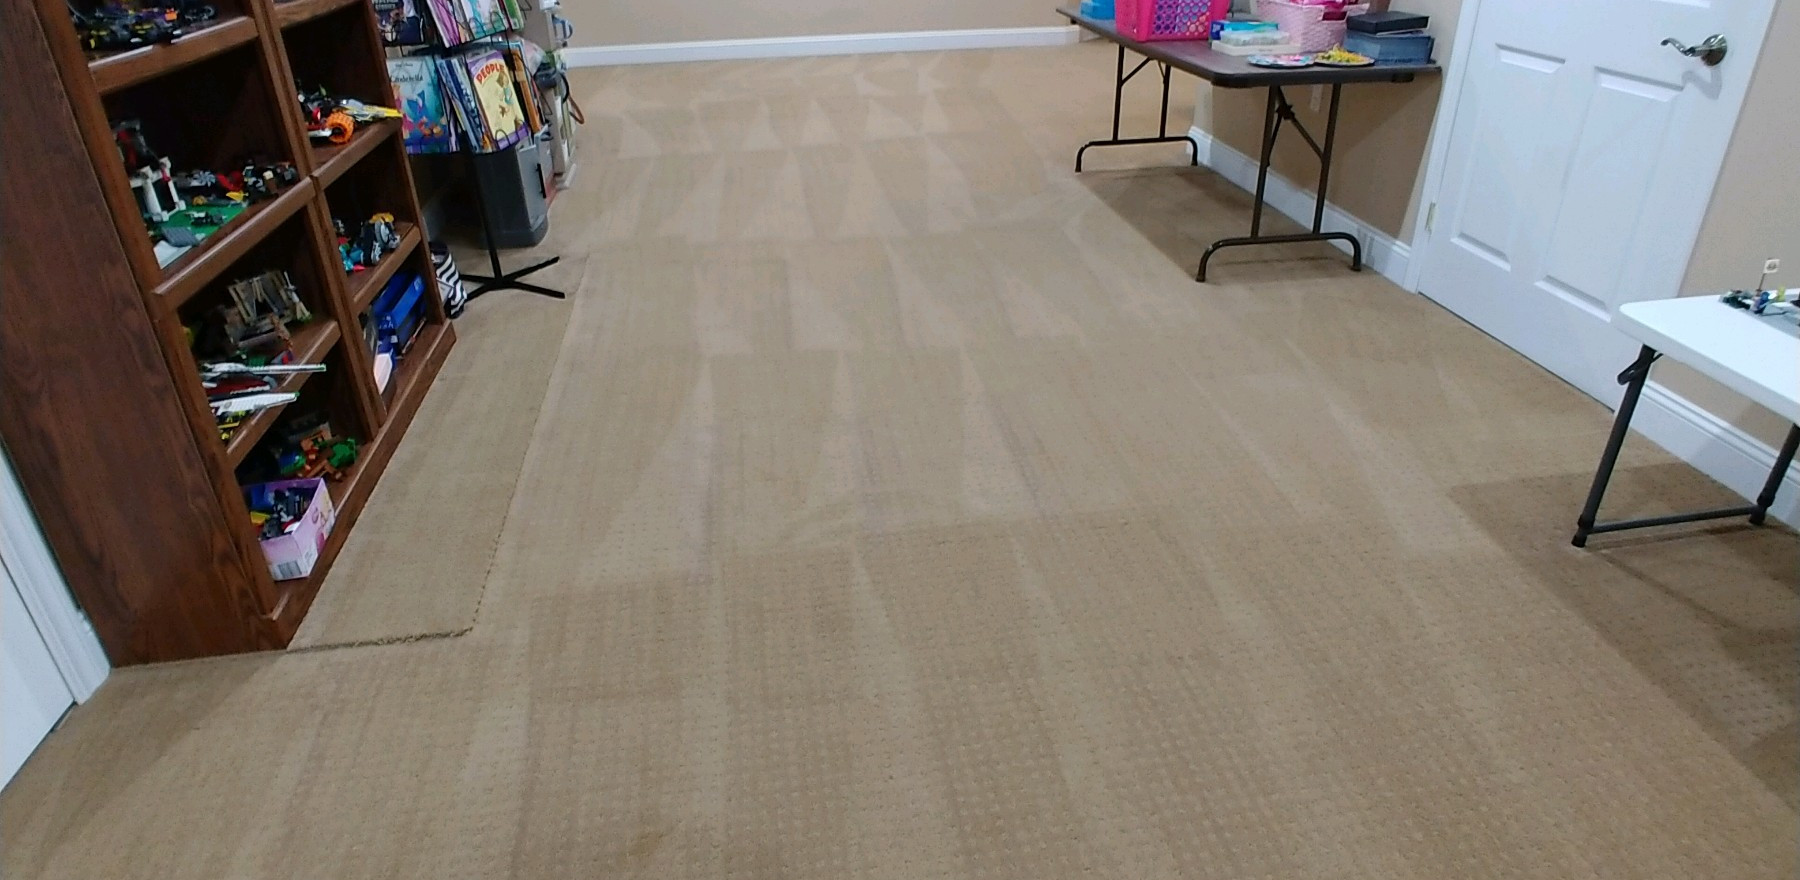 Residential Carpet Cleaning in West Bloomfield Michigan